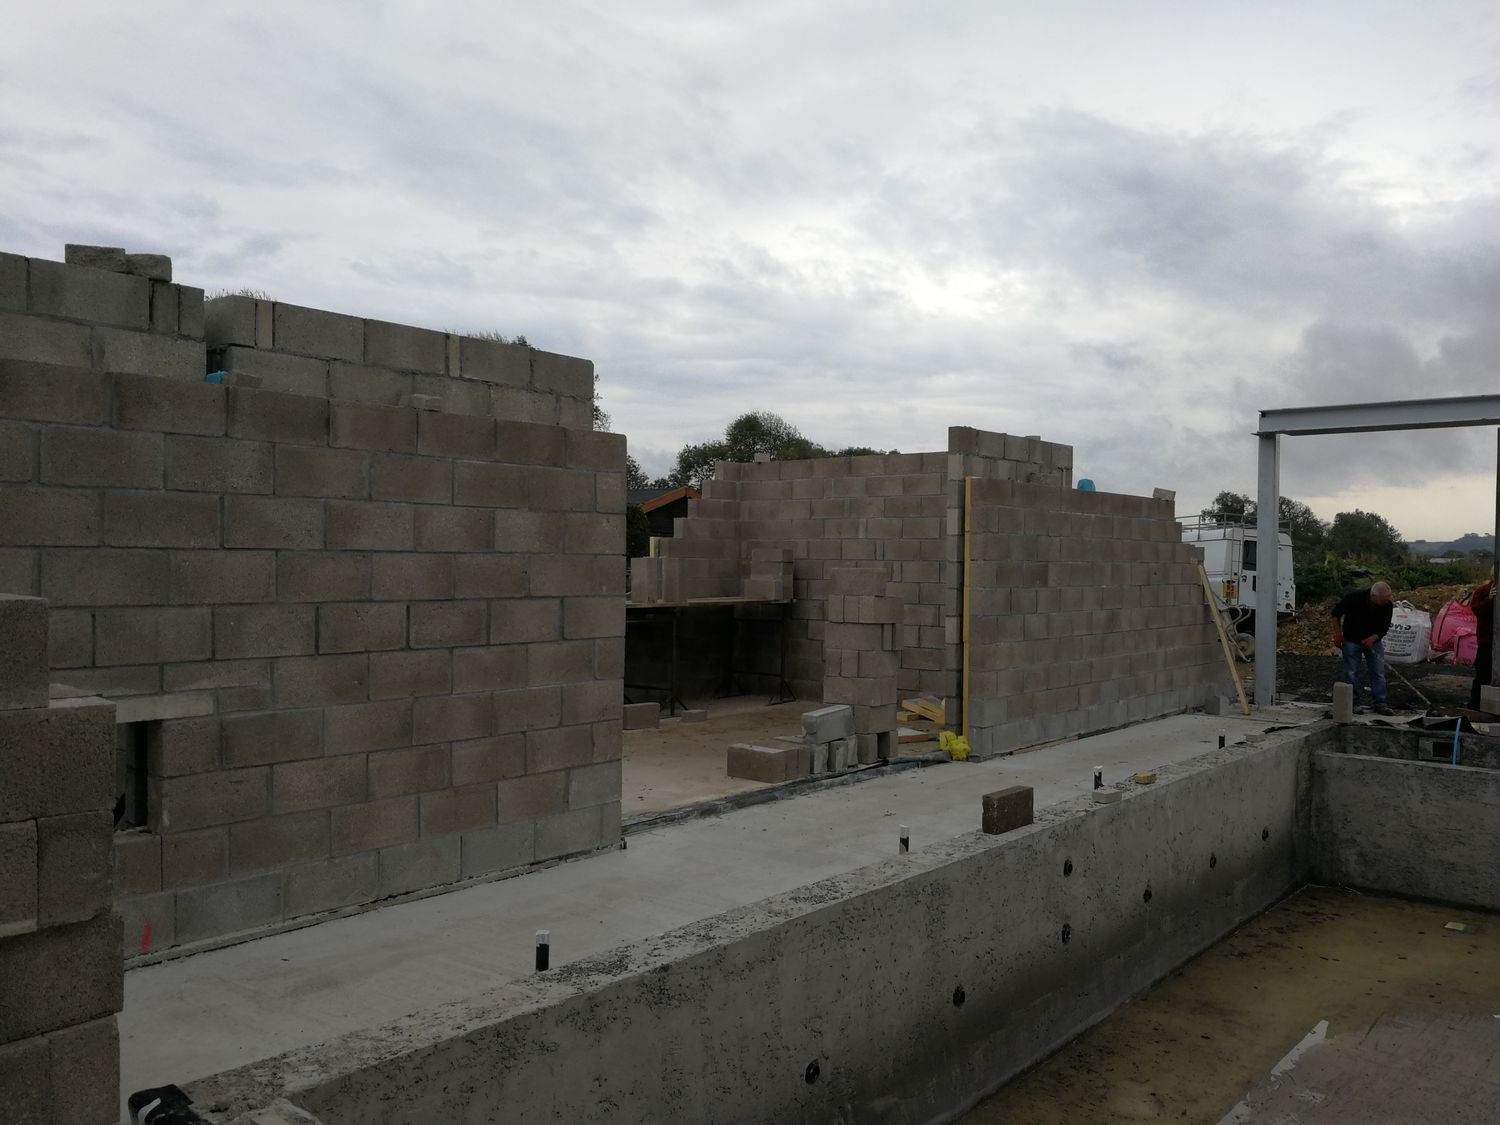 The gym walls under construction.